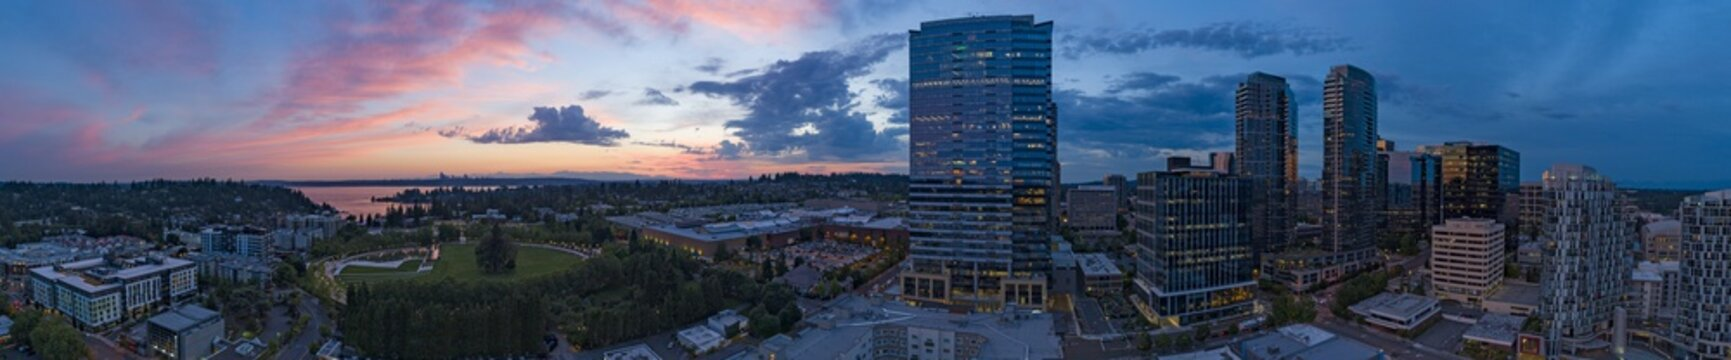 Bellevue Washington Downtown Sunset Panorama Pink Sky City Overview